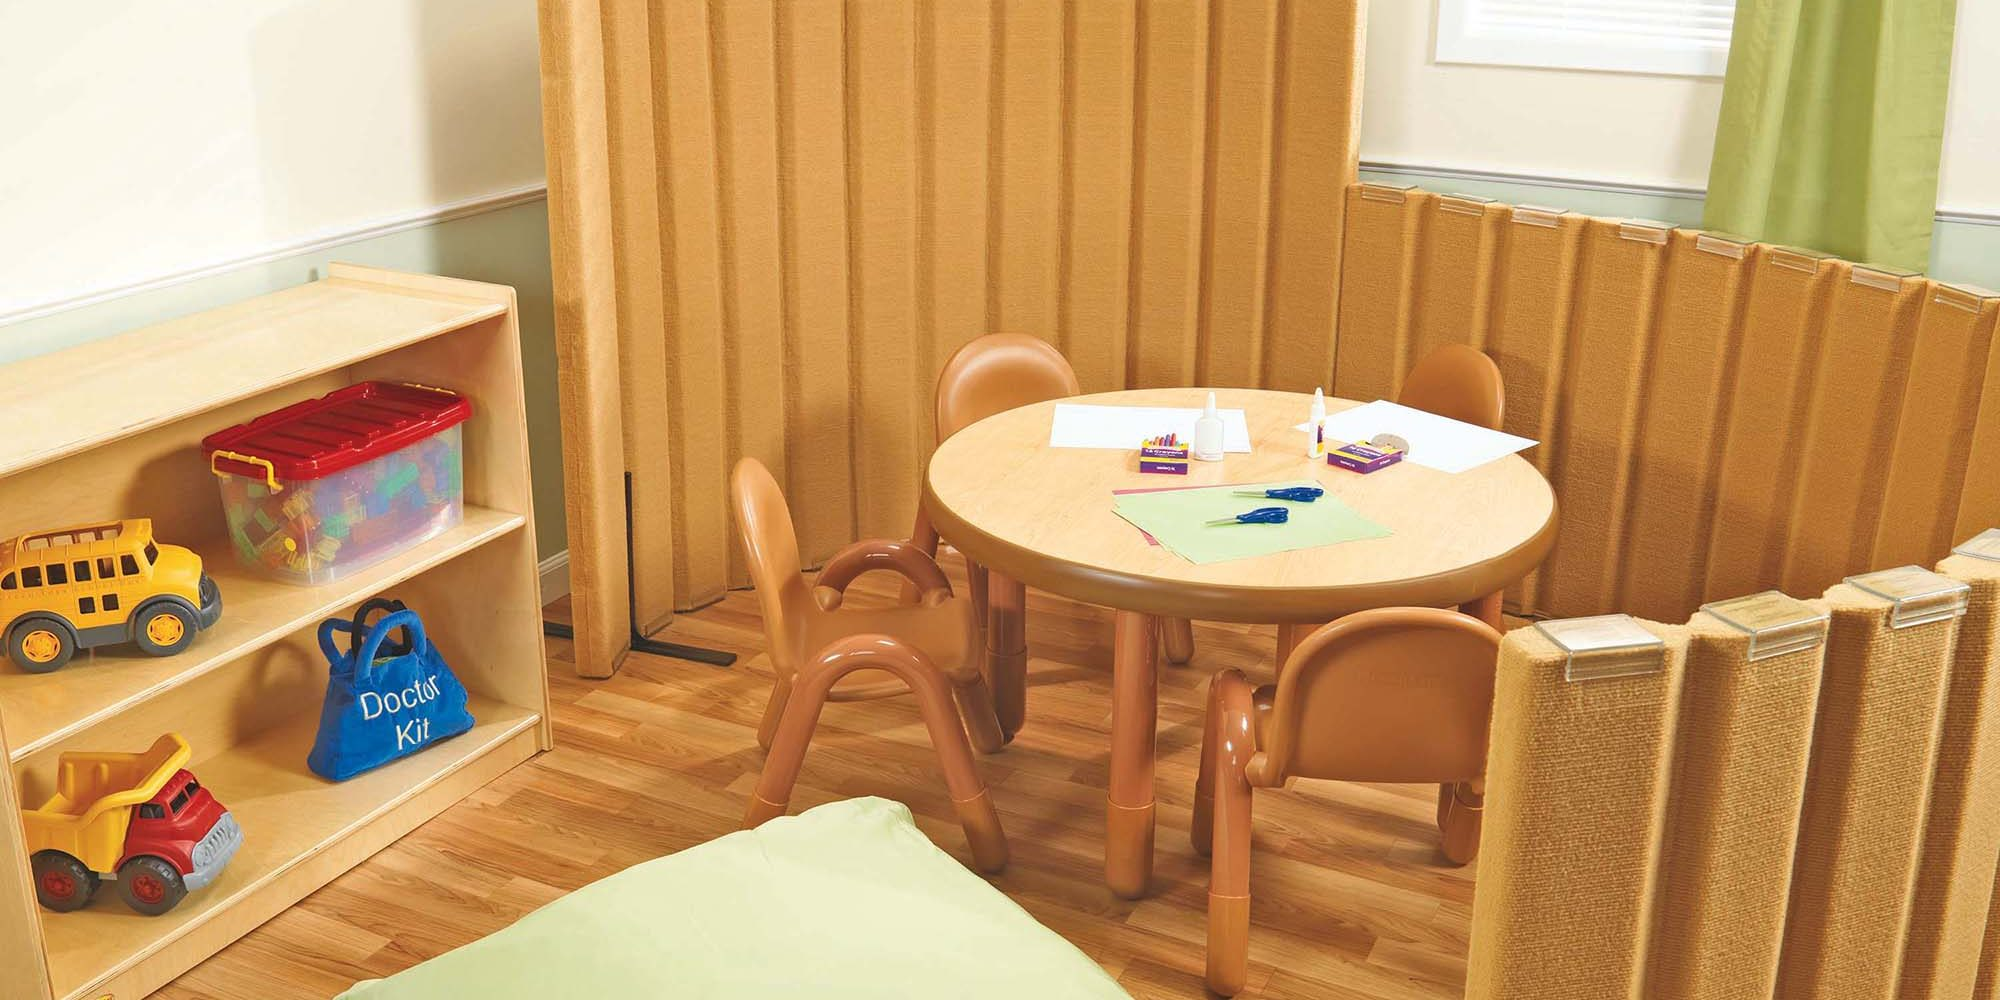 Can Classroom Design Affect Learning - Quiet Dividers with Sound Sponge Helps